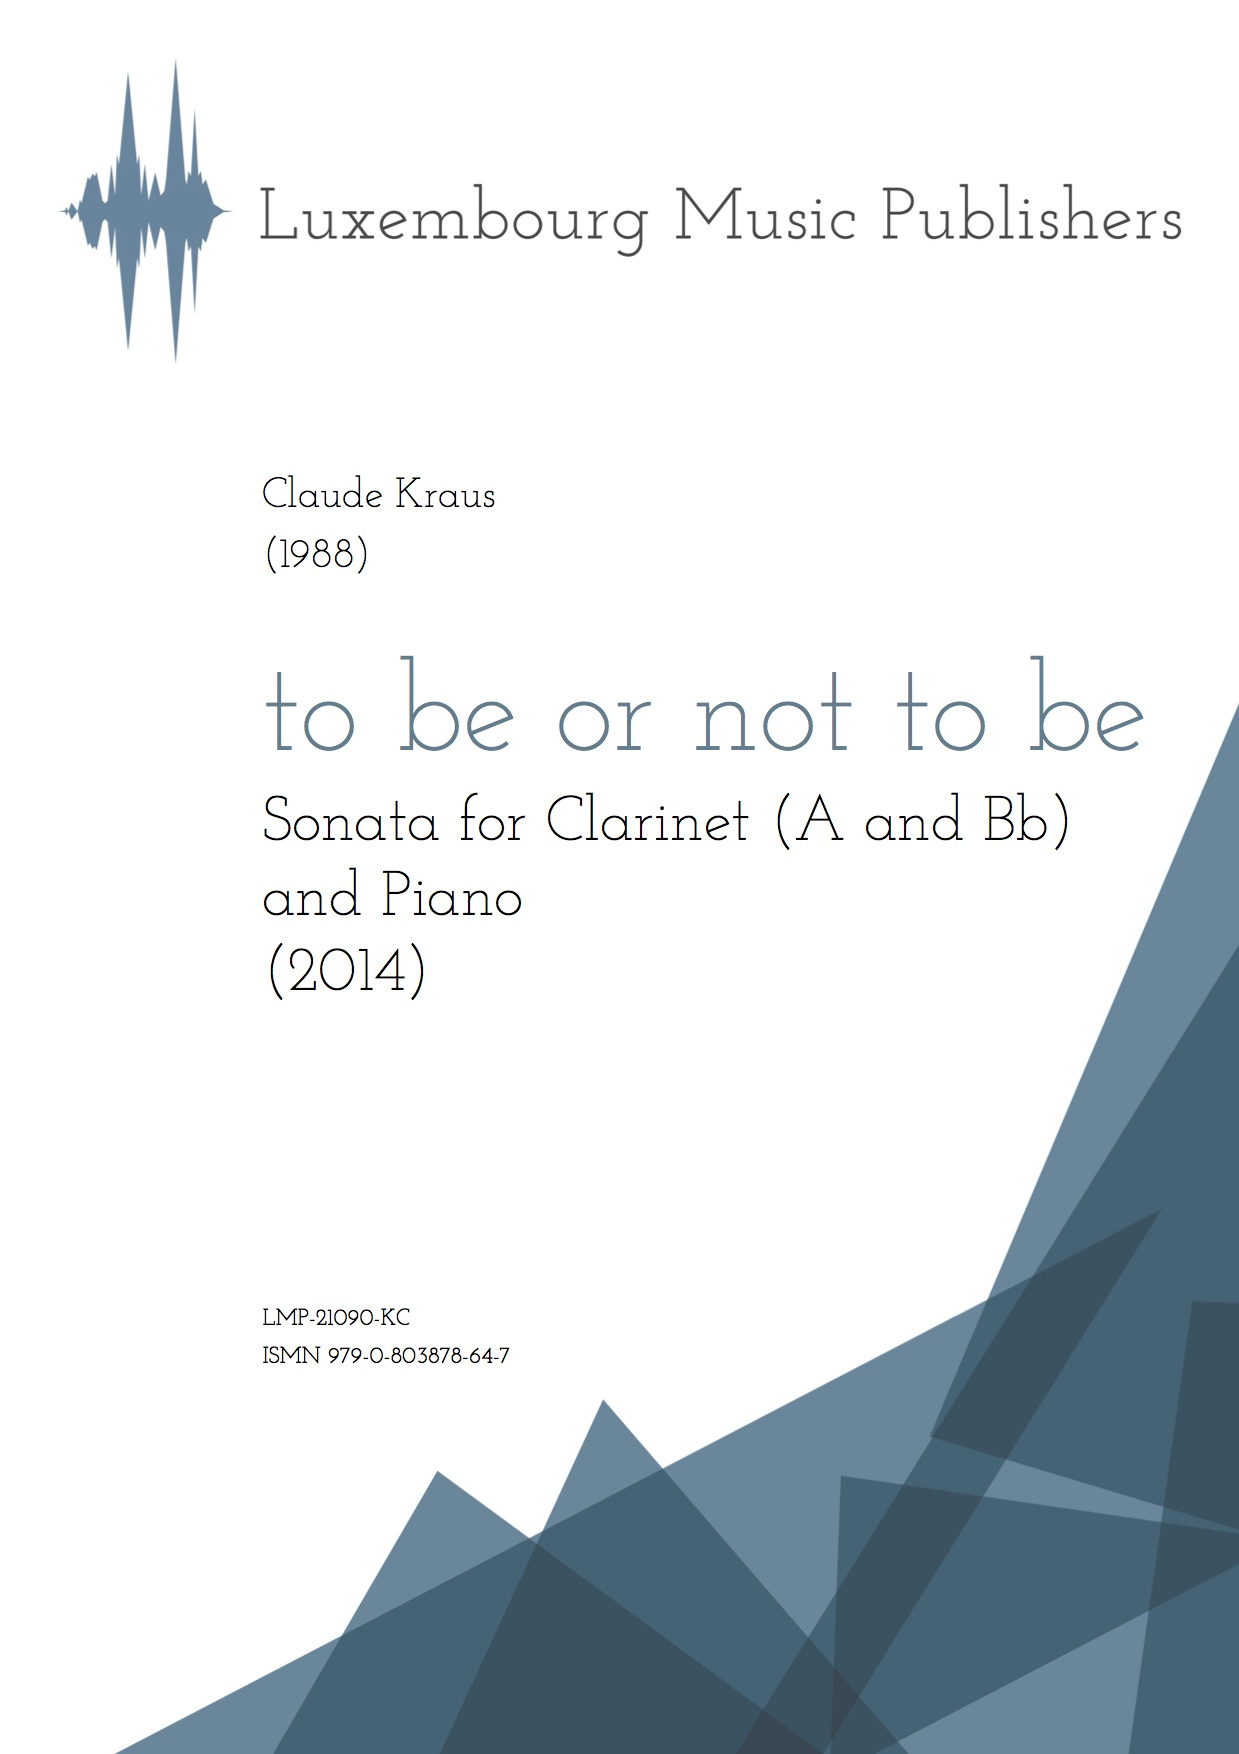 to be or not to be. Sheet Music by Claude Kraus, composer. Music for clarinet (A and Bb) and piano. Contemporary chamber music for clarinet and piano. Sonata for clarinet and piano. Music for wind instrument and piano. Sonatas for wind instruments.